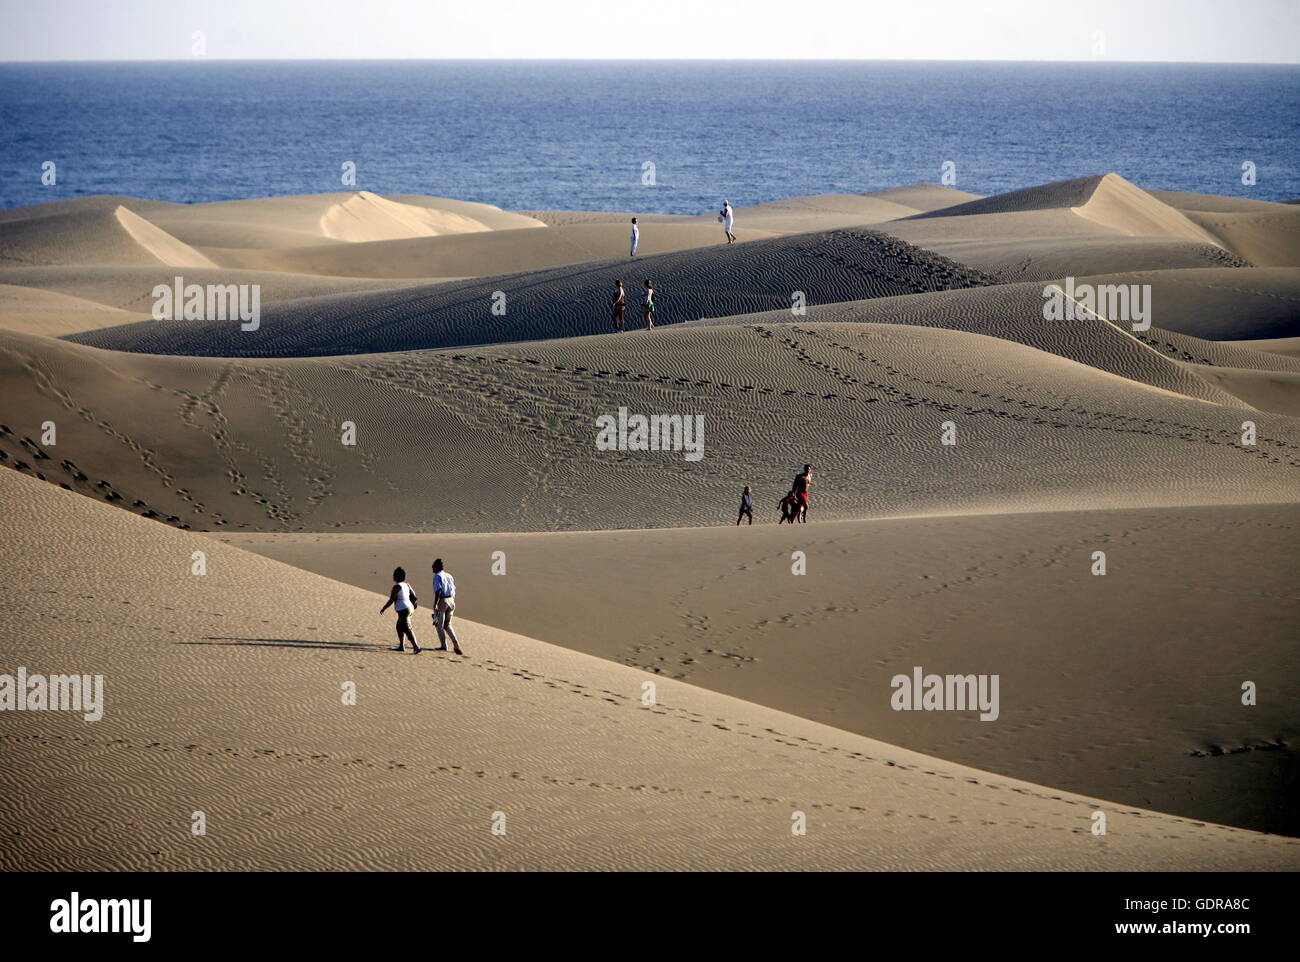 the Sanddunes at the Playa des Ingles in town of Maspalomas on the Canary Island of Spain in the Atlantic ocean. - Stock Image